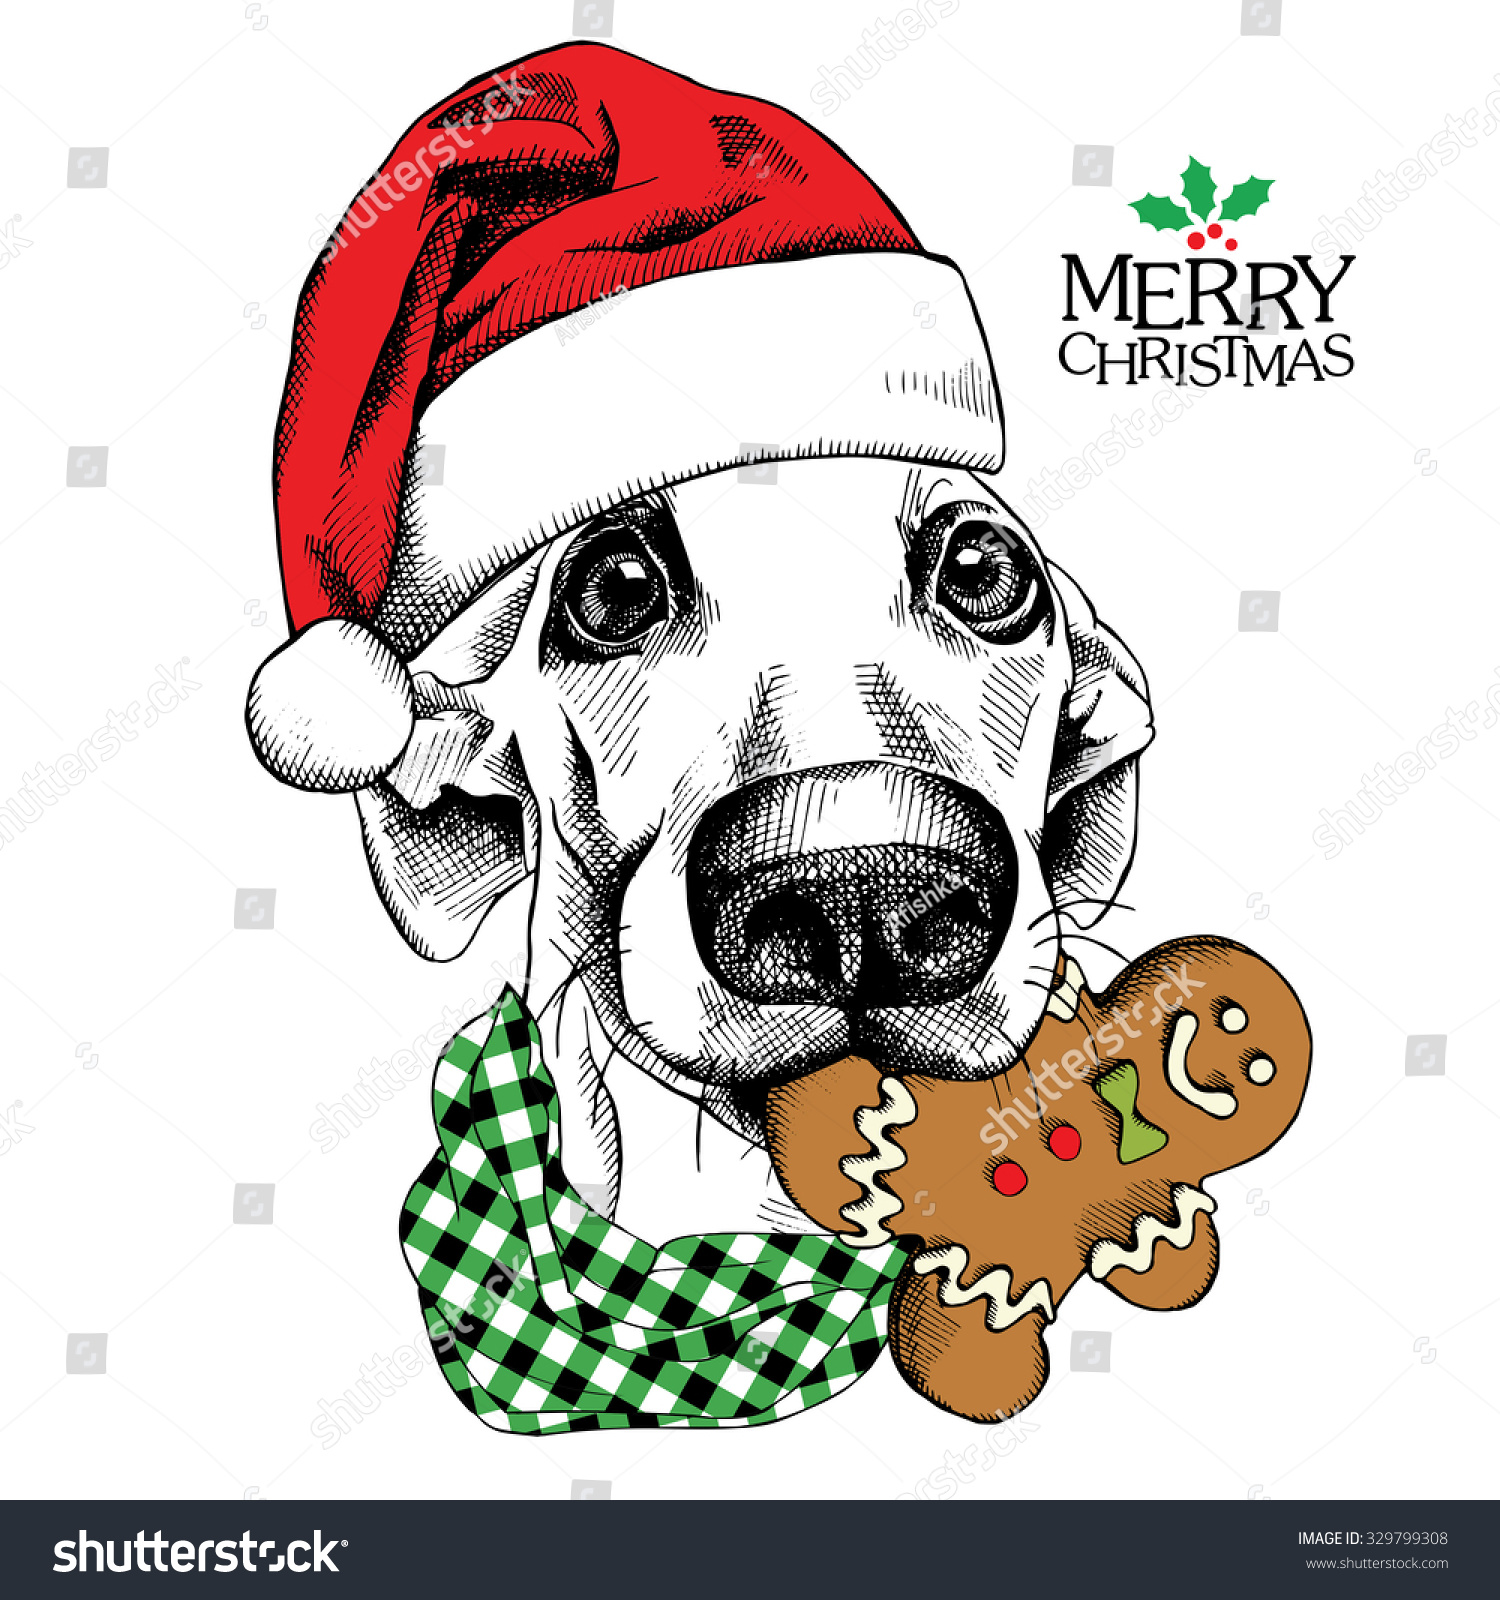 christmas card funny dog portrait in red santas hat and with gingerbread man vector - Funny Dog Christmas Cards